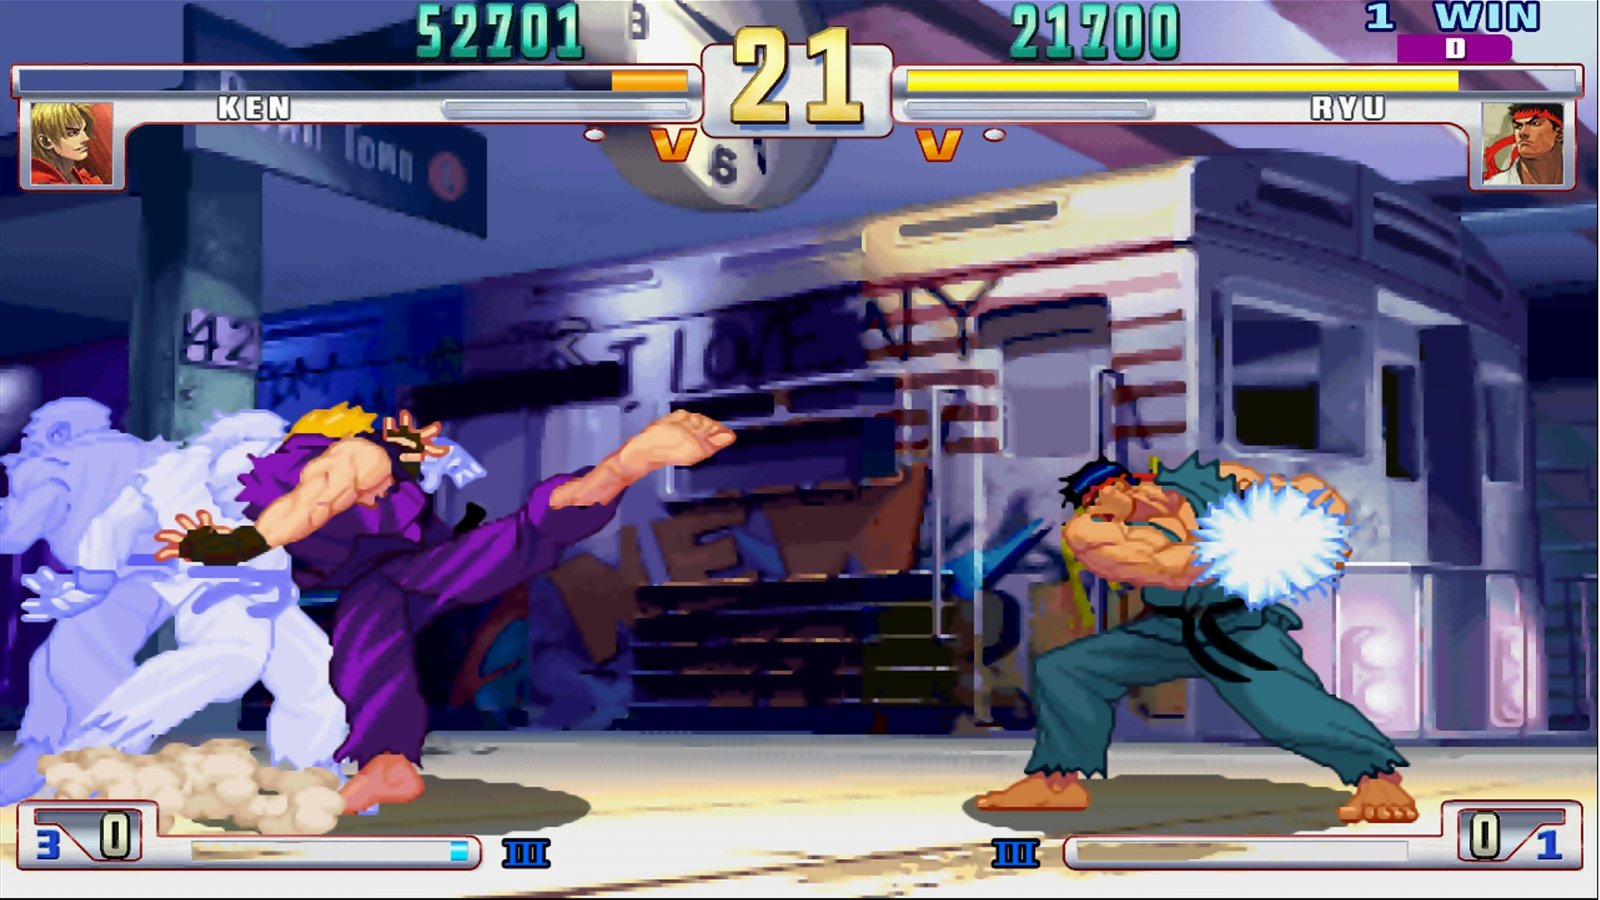 Hadouken: A History of Street Fighter 5